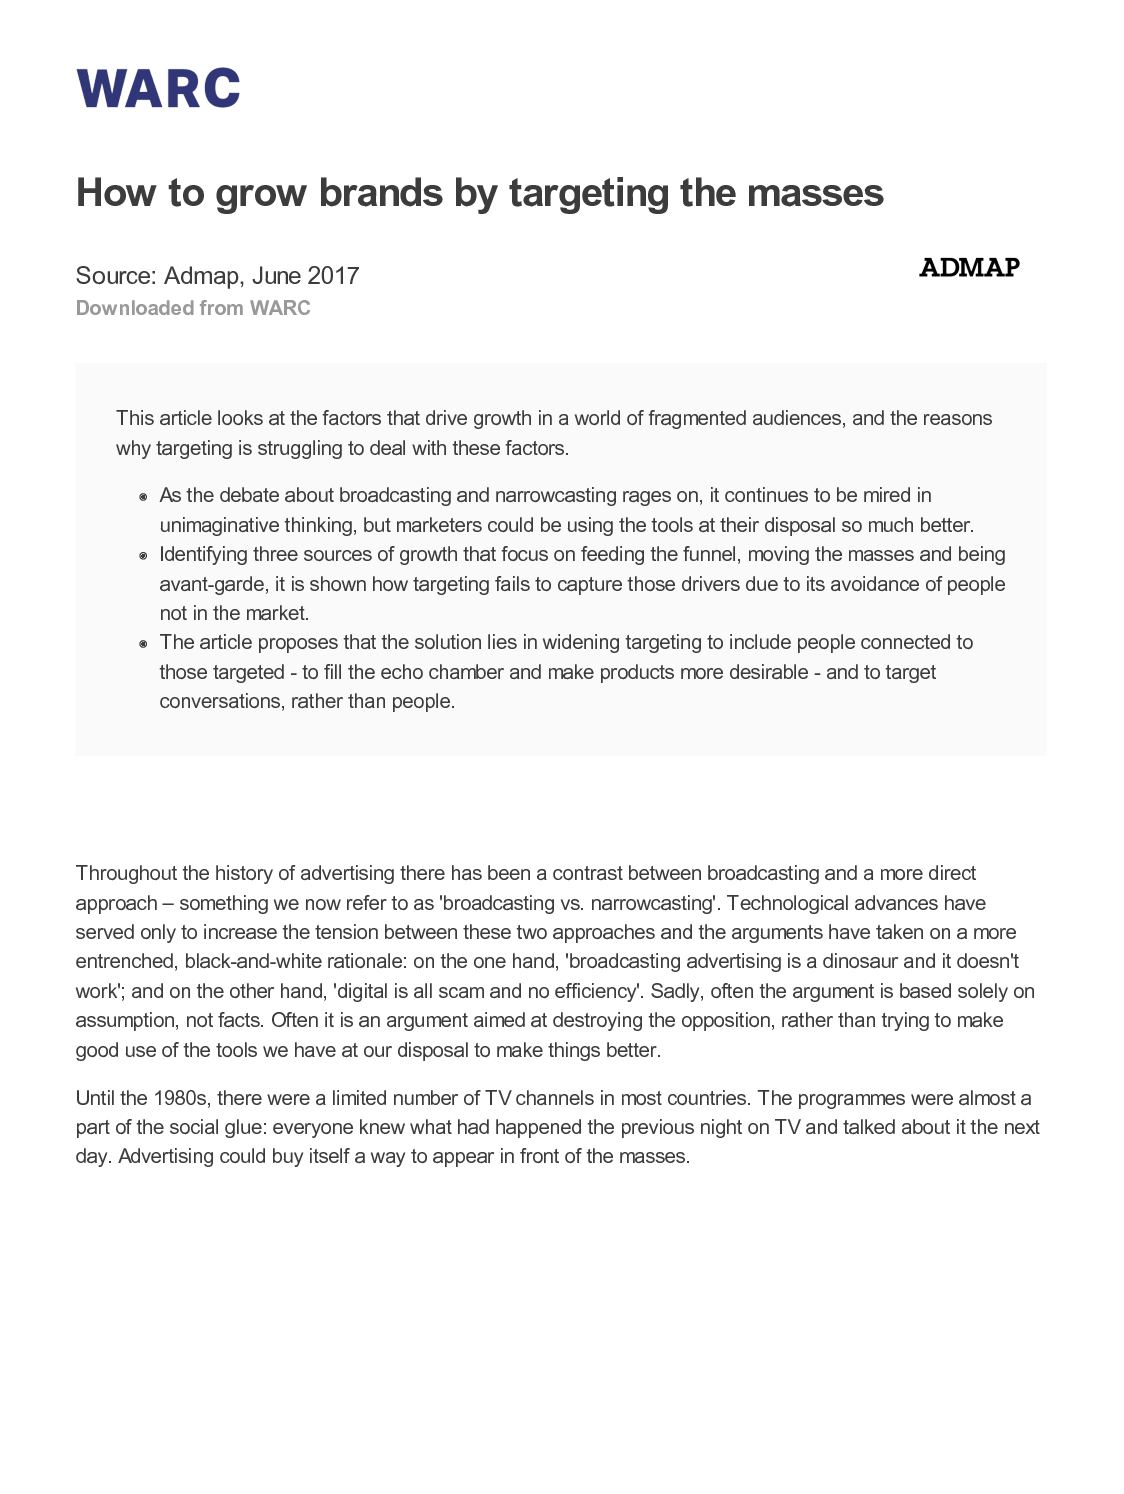 How To Grow Brands By Targeting The Mass